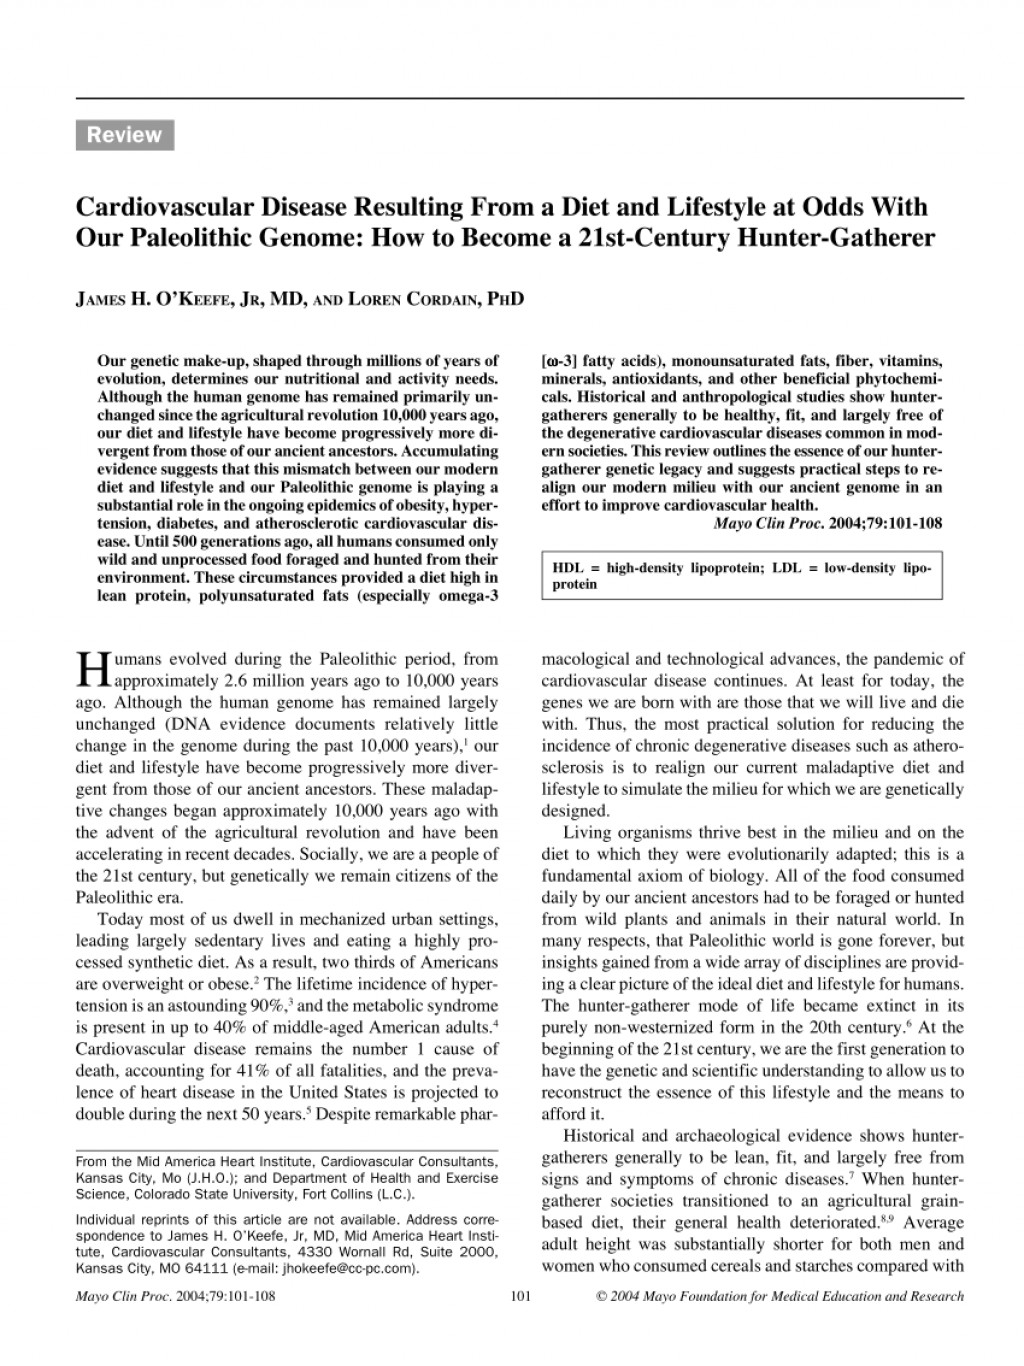 004 Essay Example Largepreview Lifestyle And Cardiac Beautiful Health Large